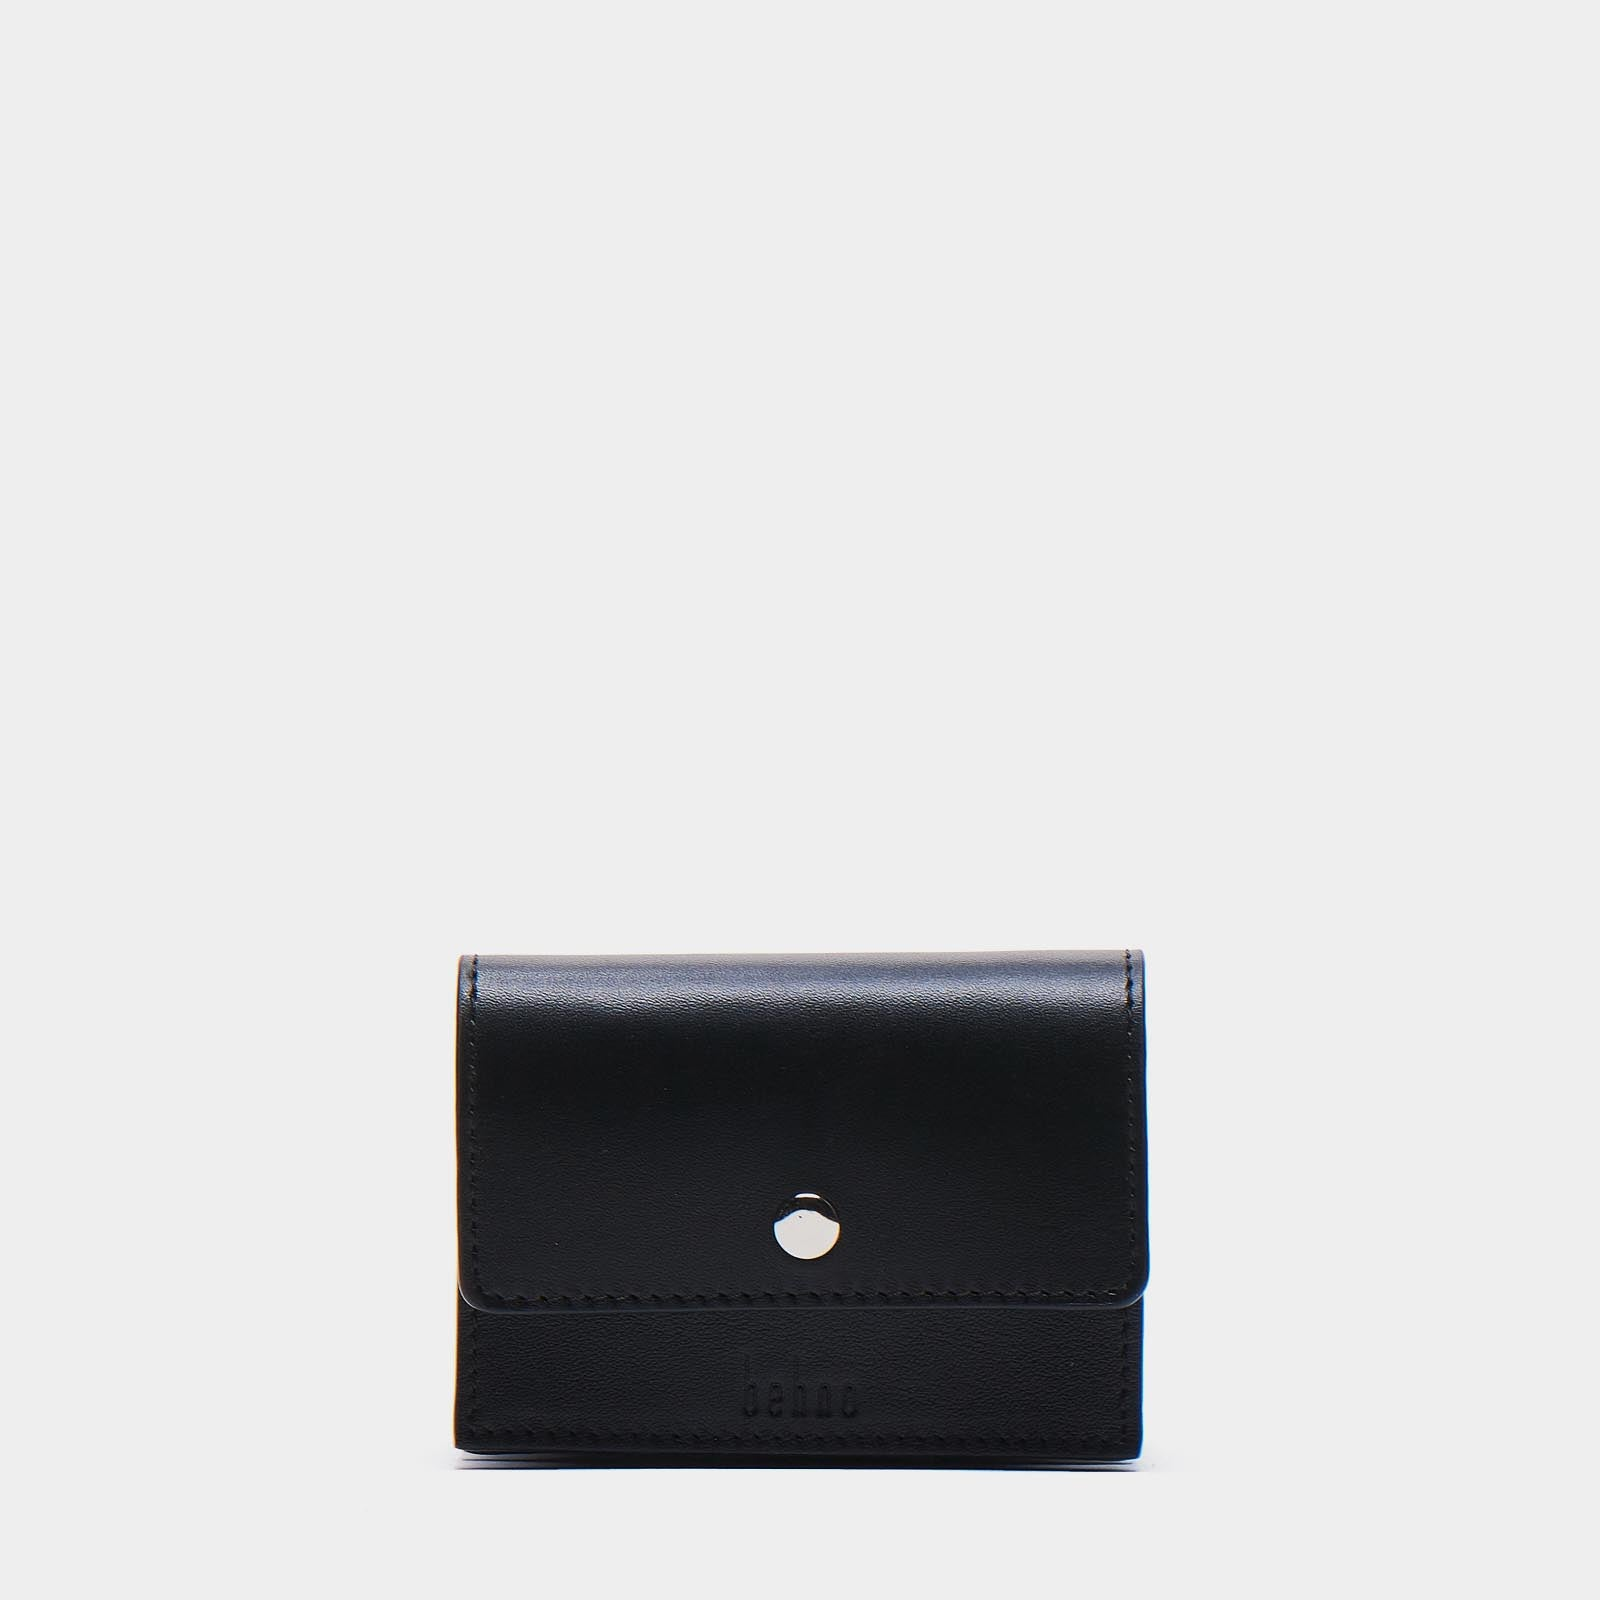 WHITNEY WALLET NAPPA BLACK